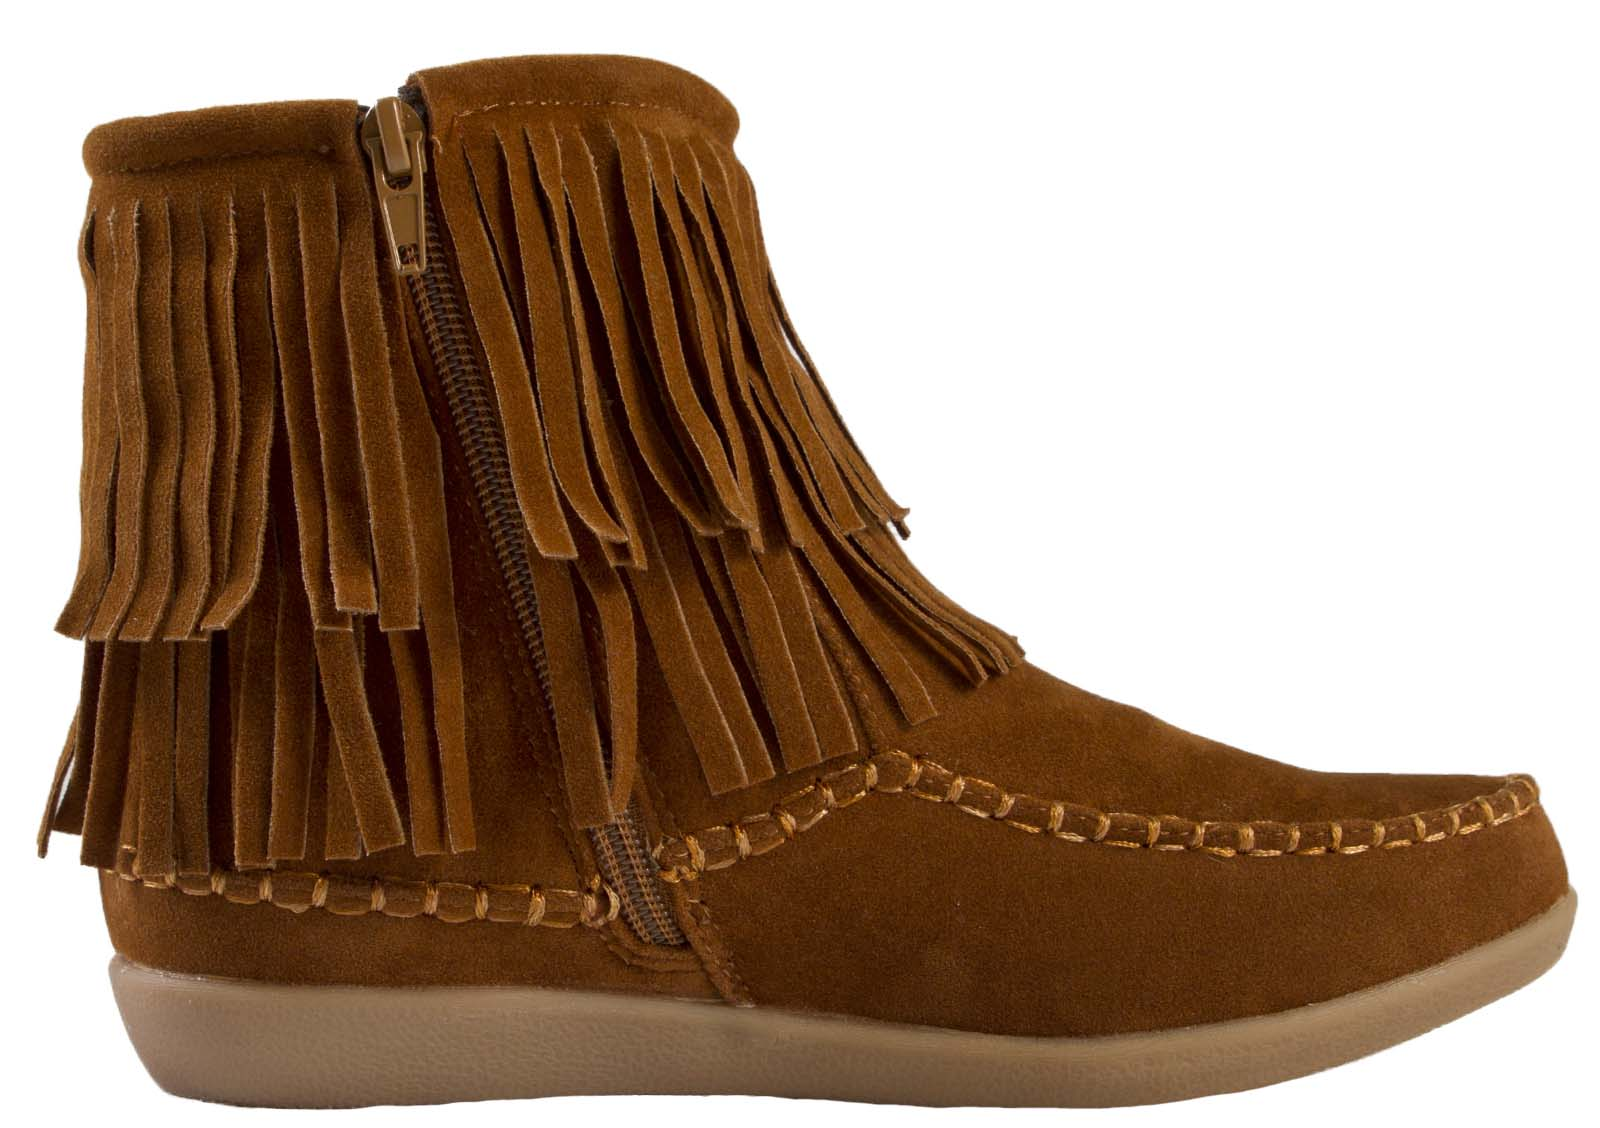 Popular  Faux Suede Fringe Tassel Block High Heel Zip Up Ankle Boots Shoes